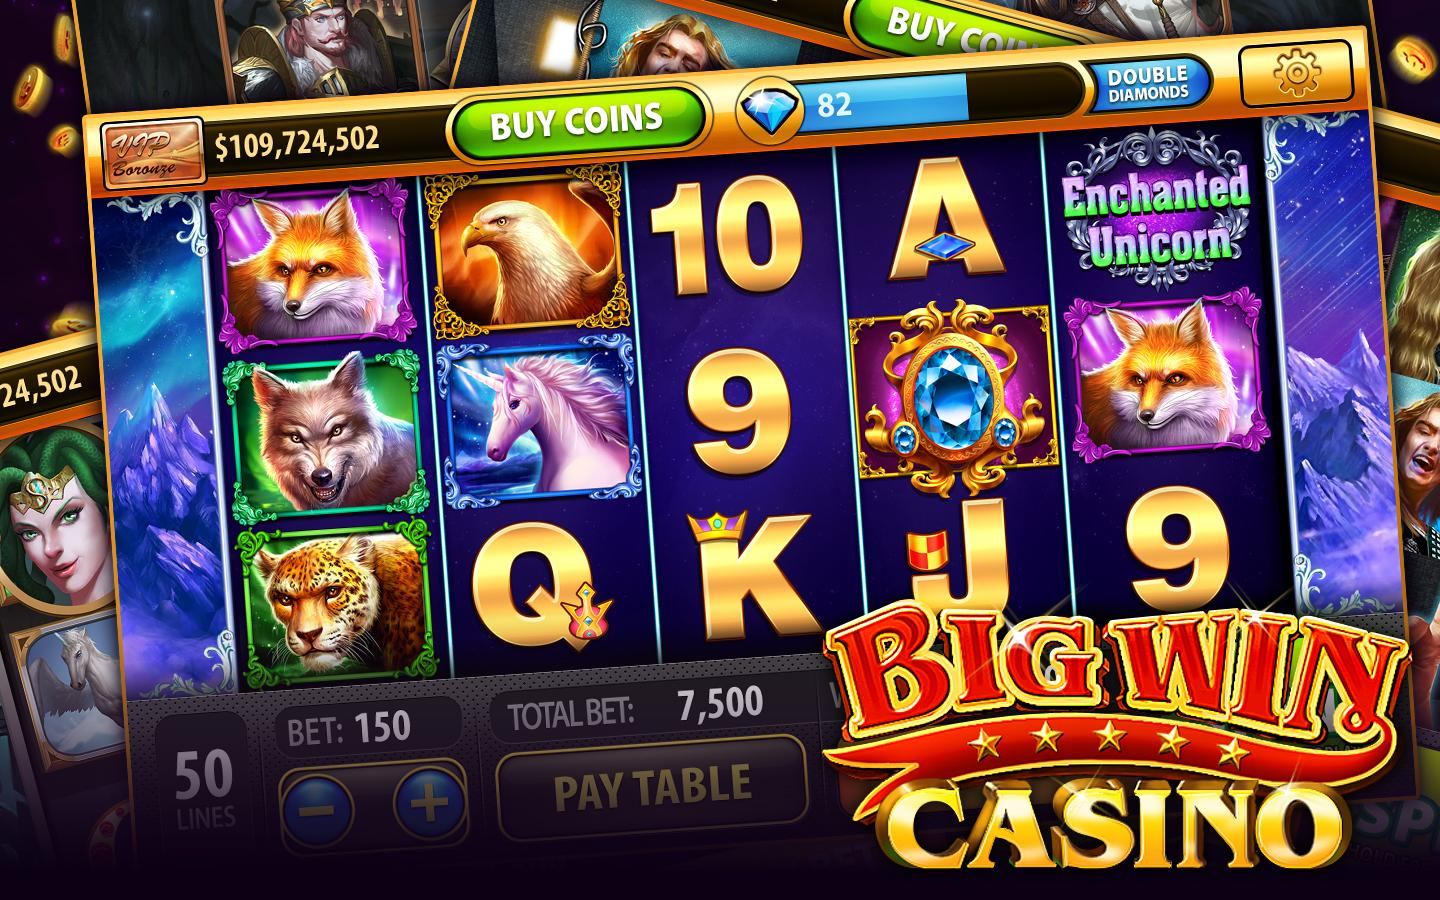 Vegas Cash Casino Game - Win Big Playing Online Casino Games